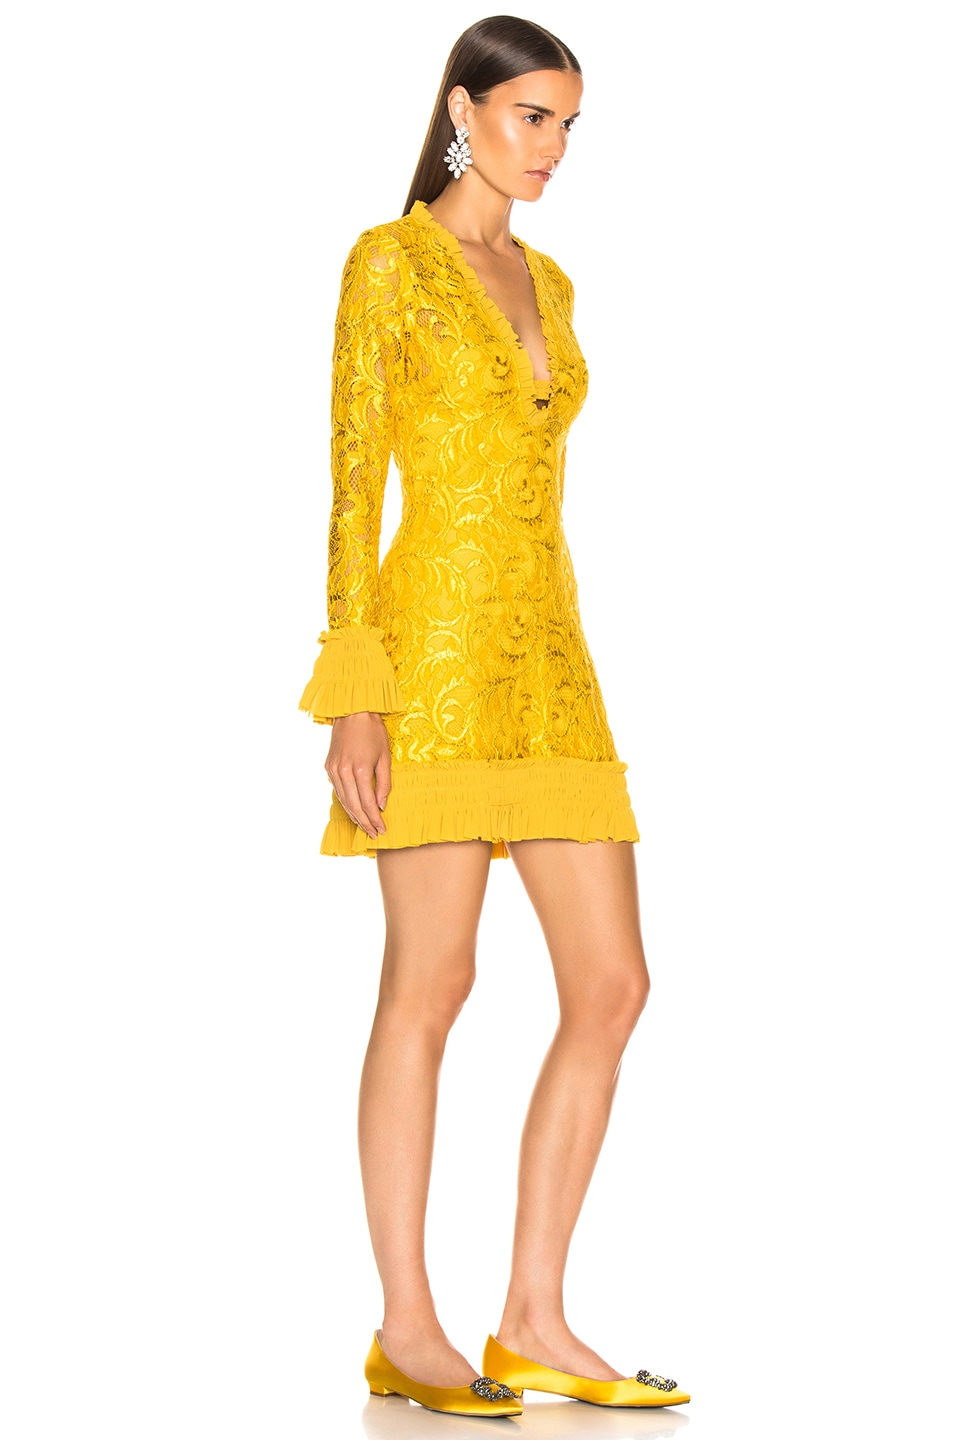 Image 3 of Alexis Nuray Dress in Gold Lace